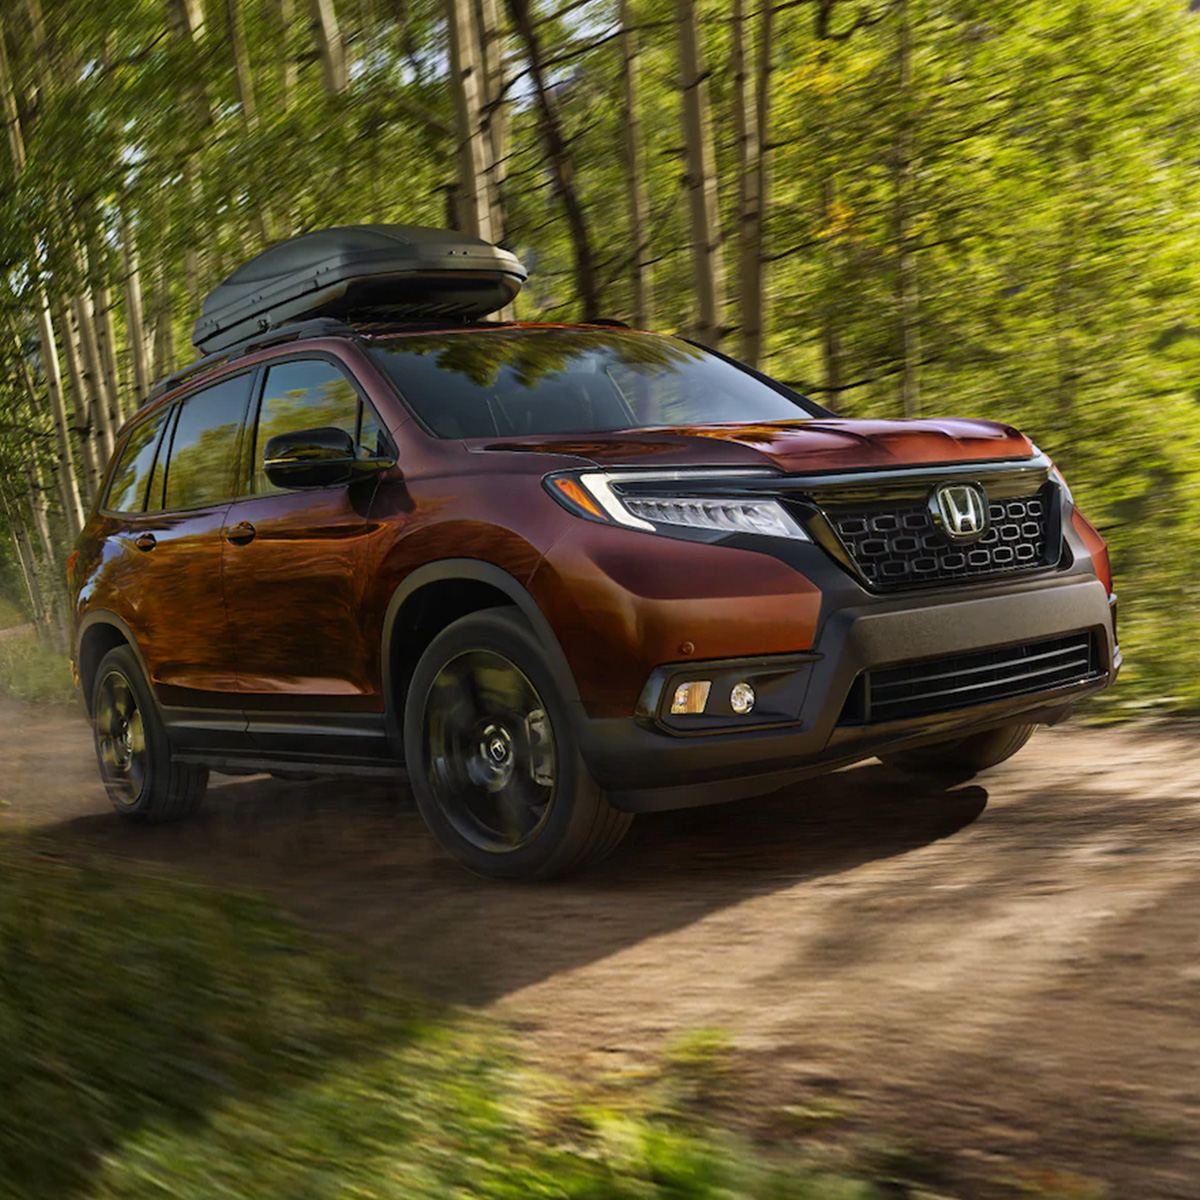 side profile of red Honda passport suv driving on a dirt road in the middle of a forest